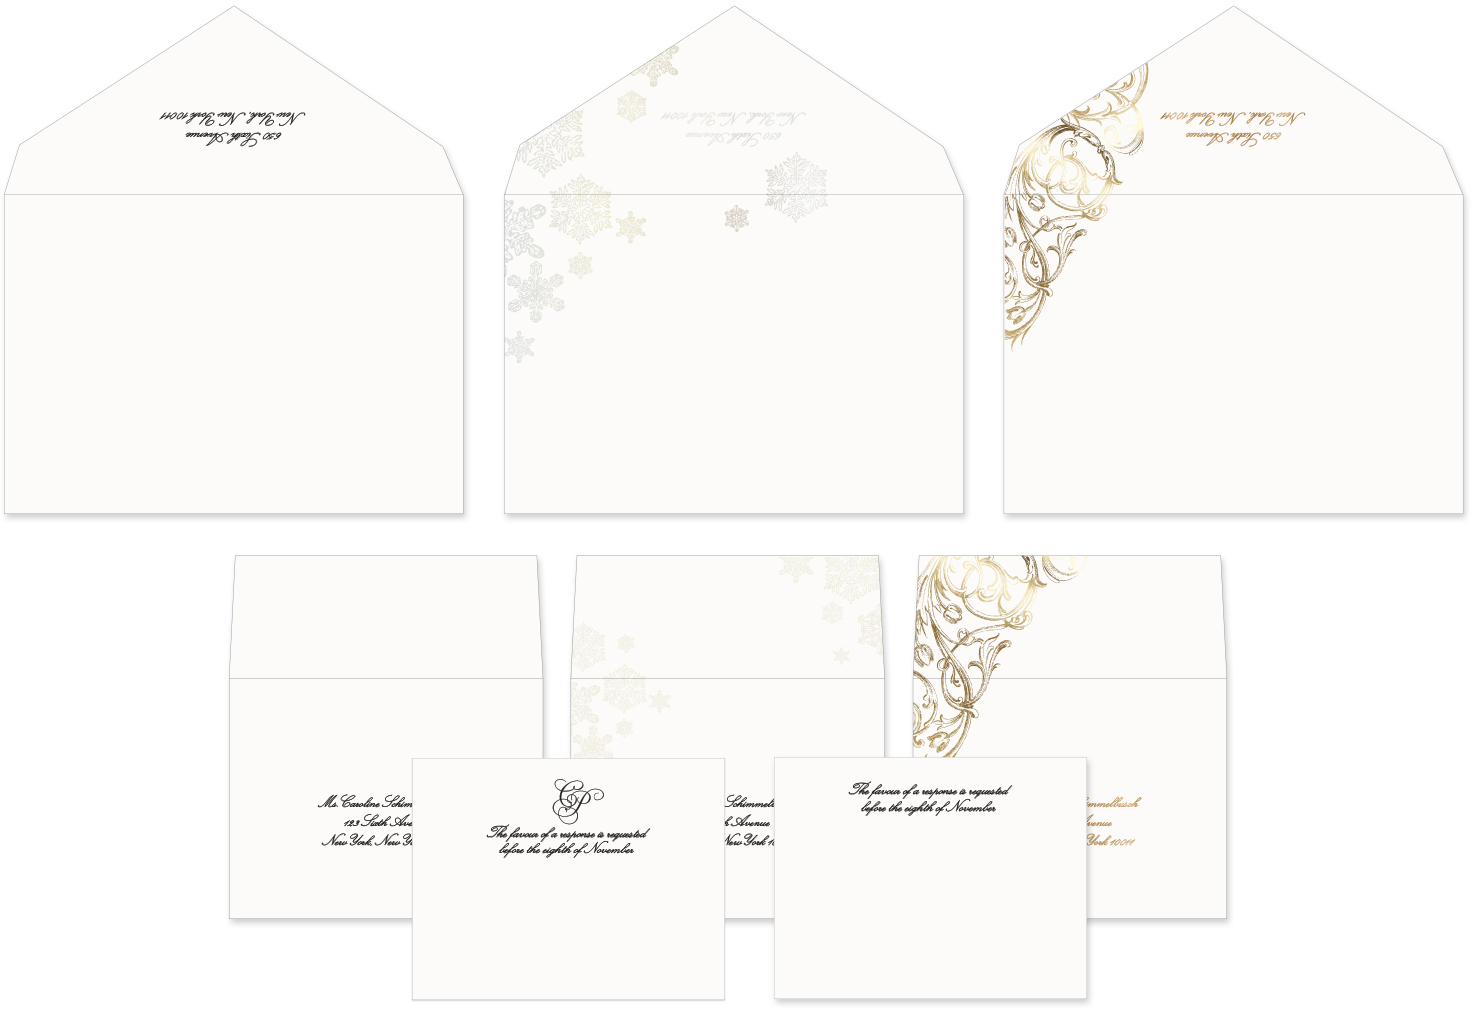 Matching ornate and winter inspired envelopes